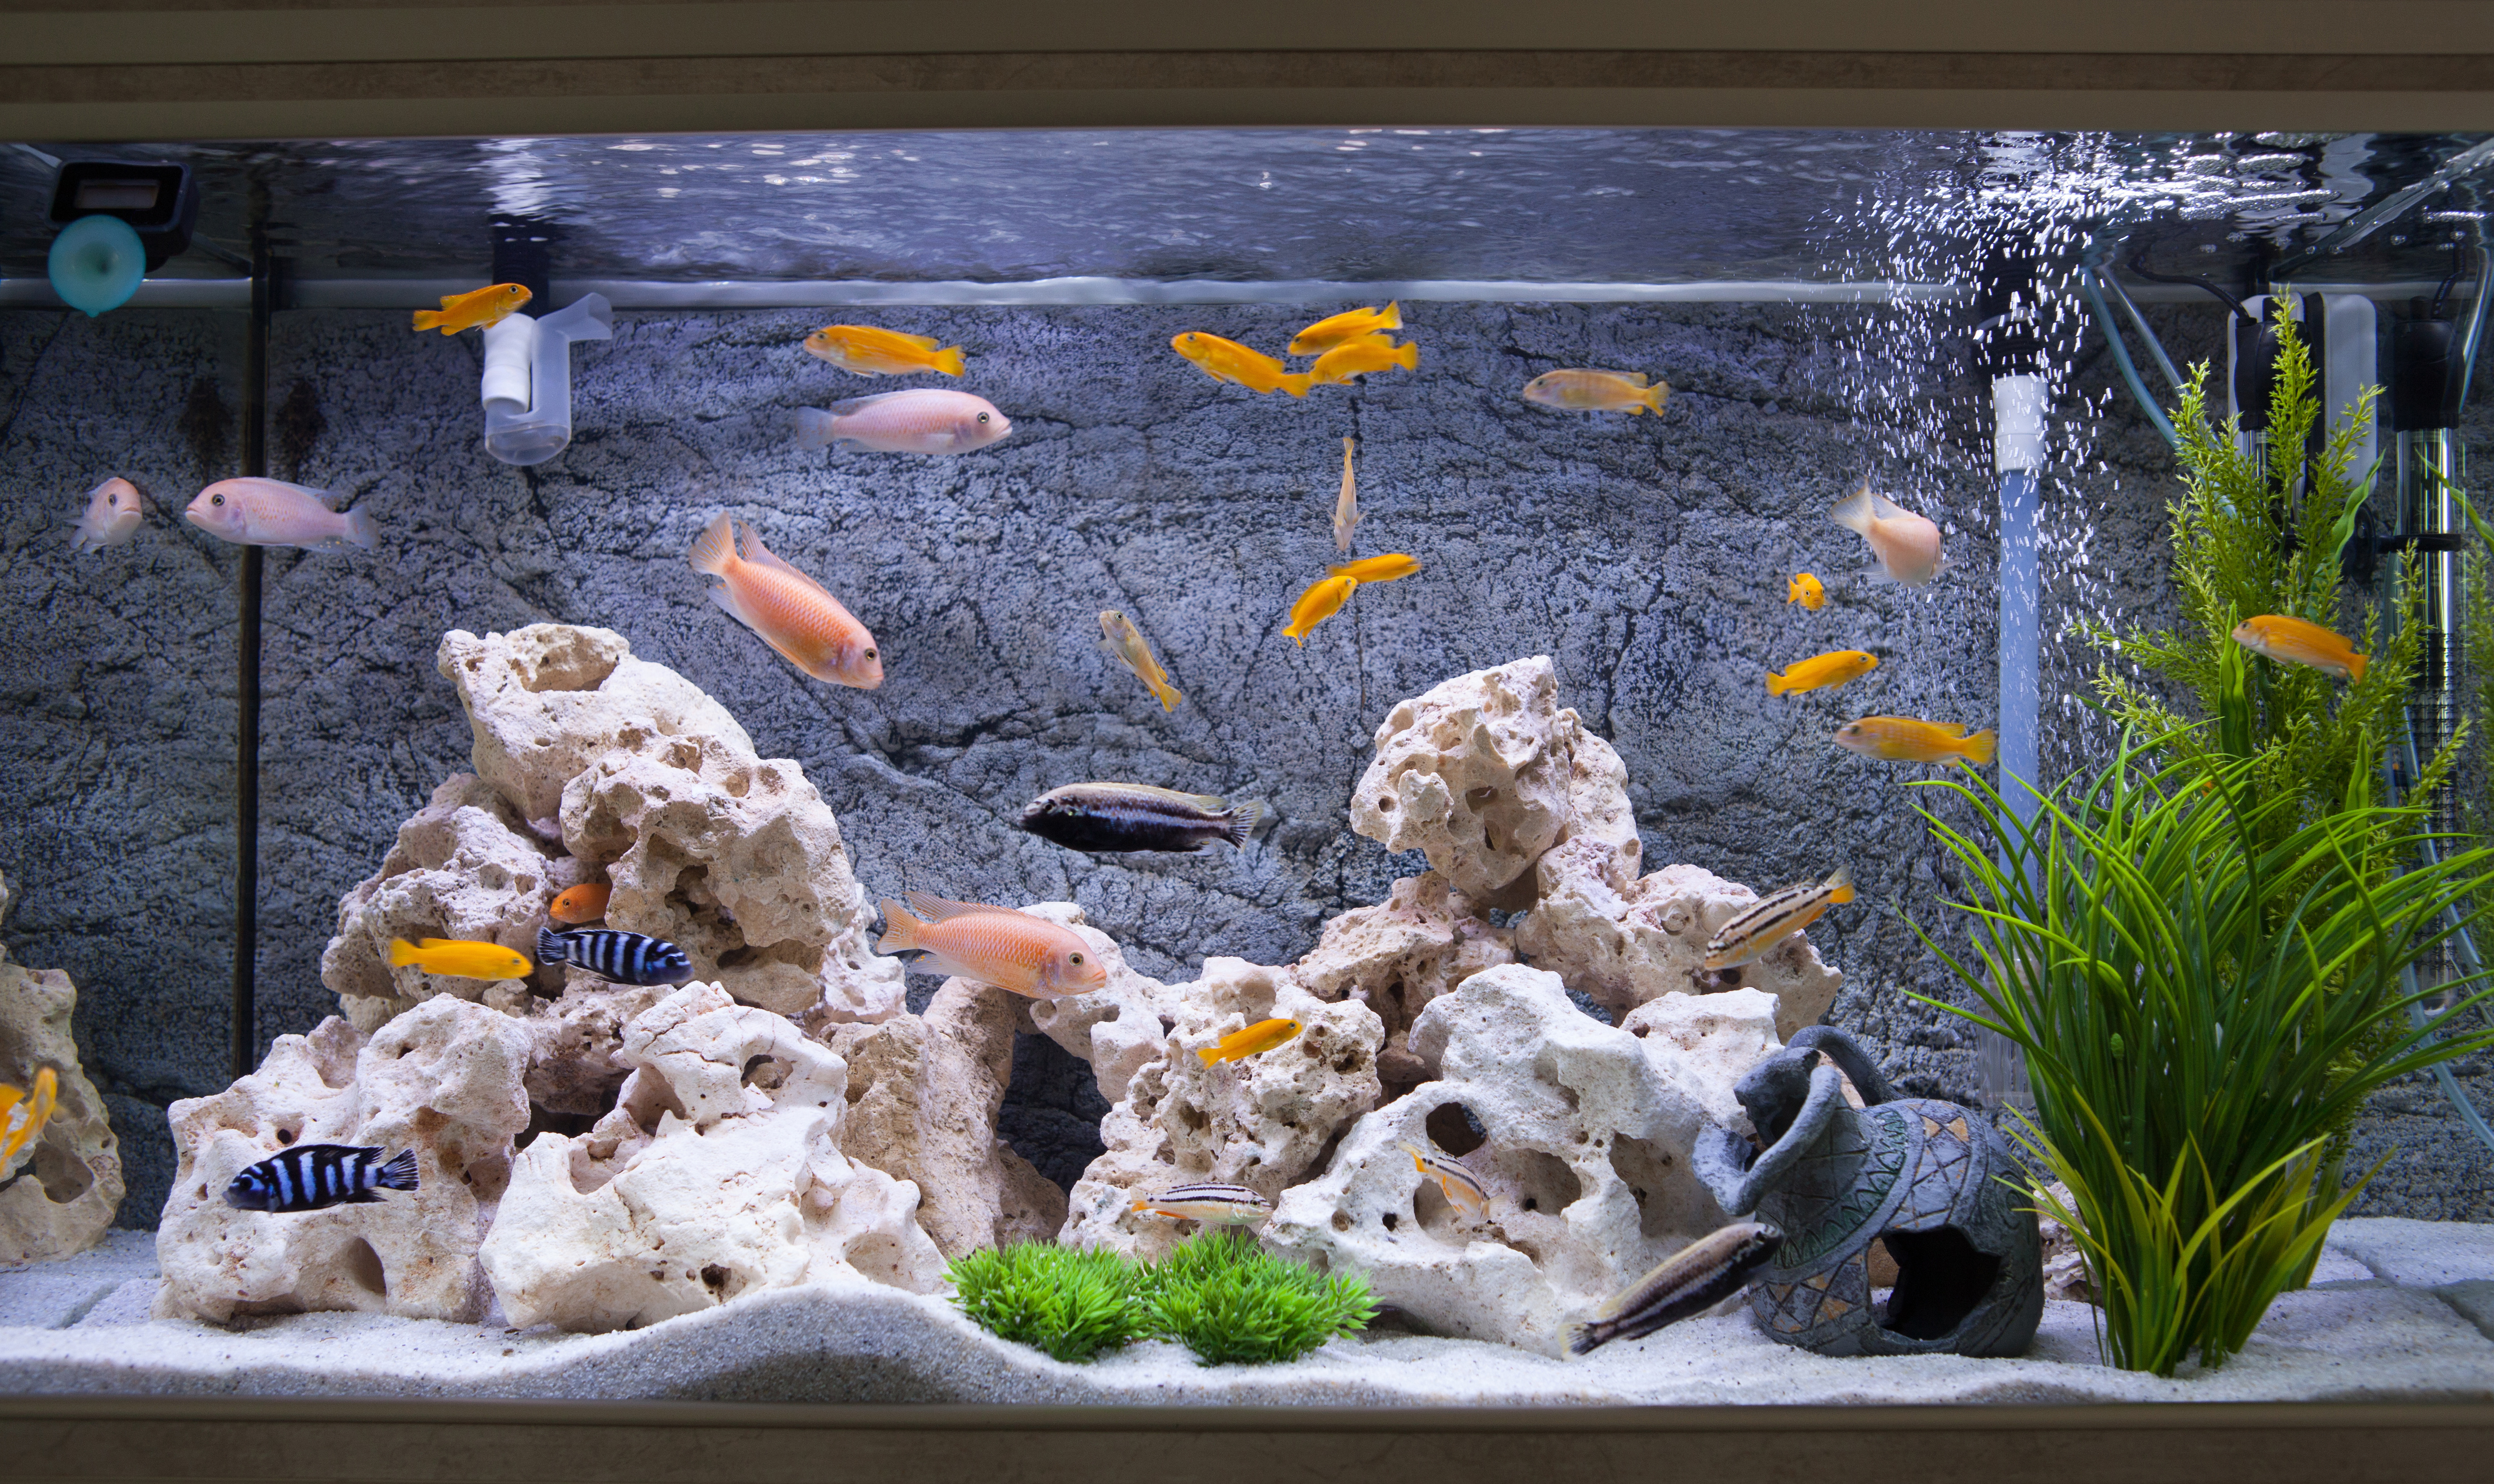 6 Reasons Why You Should Hire Someone to Maintain Your Aquarium